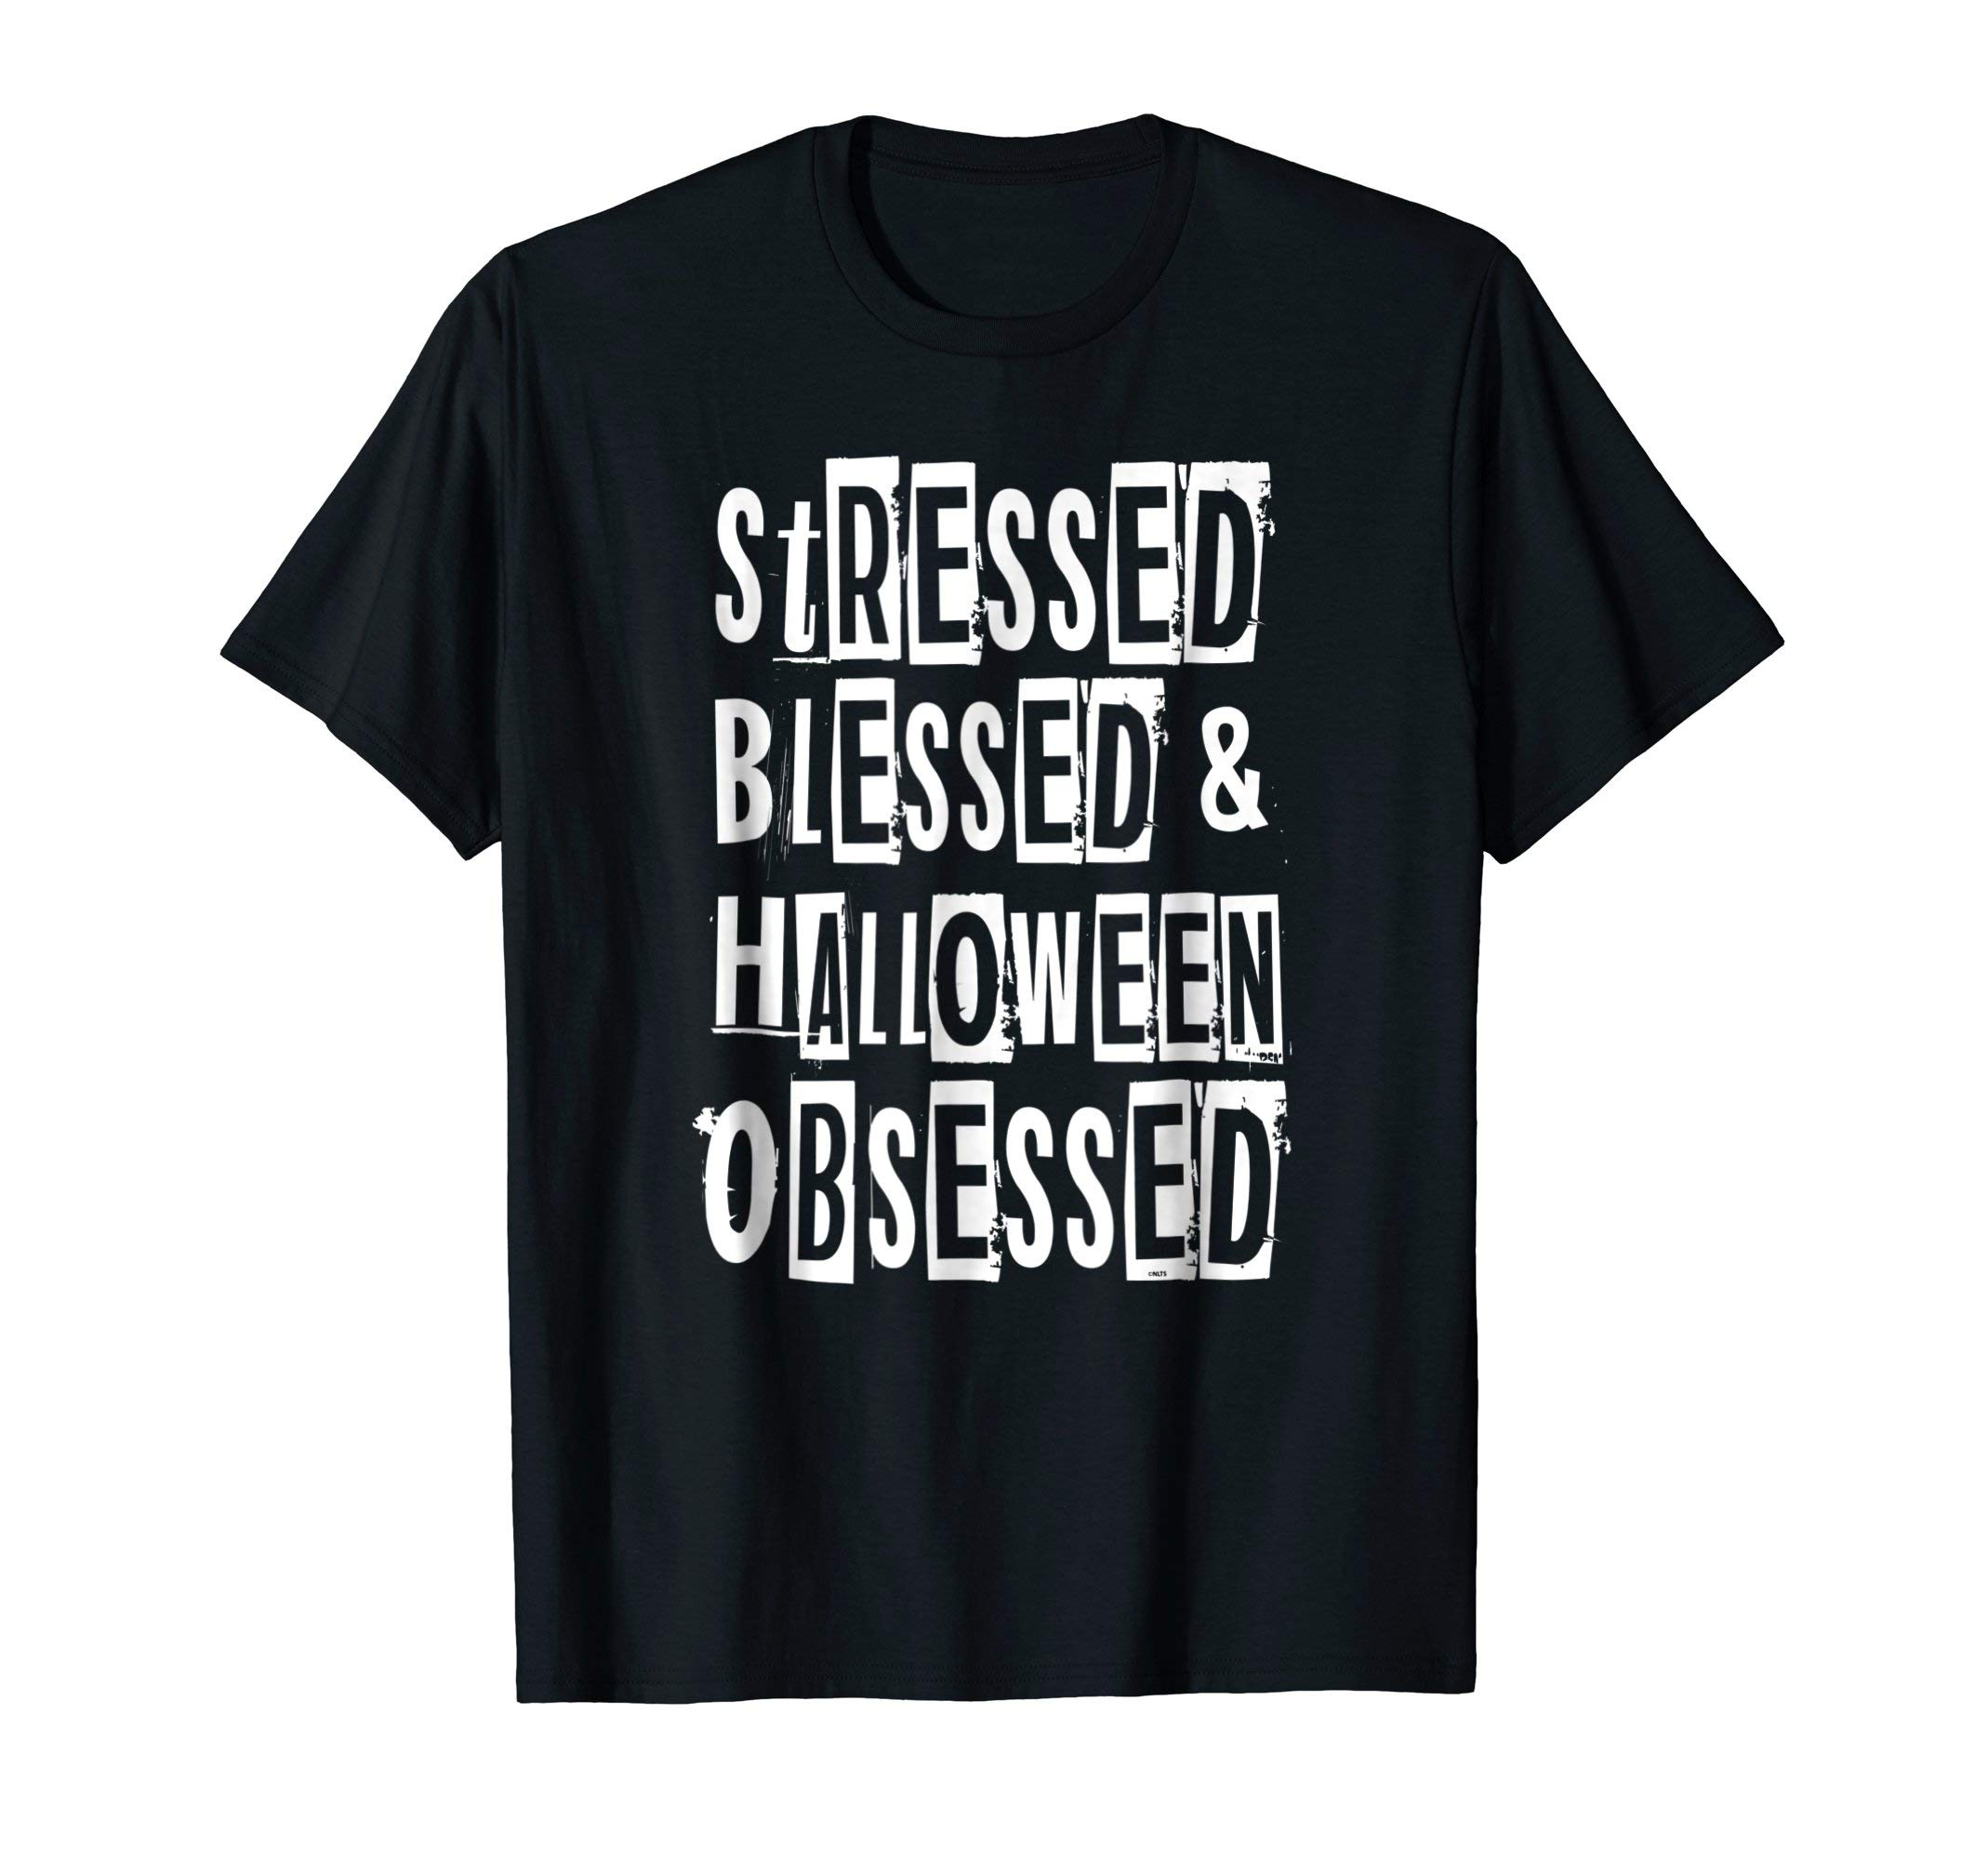 Stressed-Blessed-Halloween-Obsessed-Humor-Fun-T-Shirt